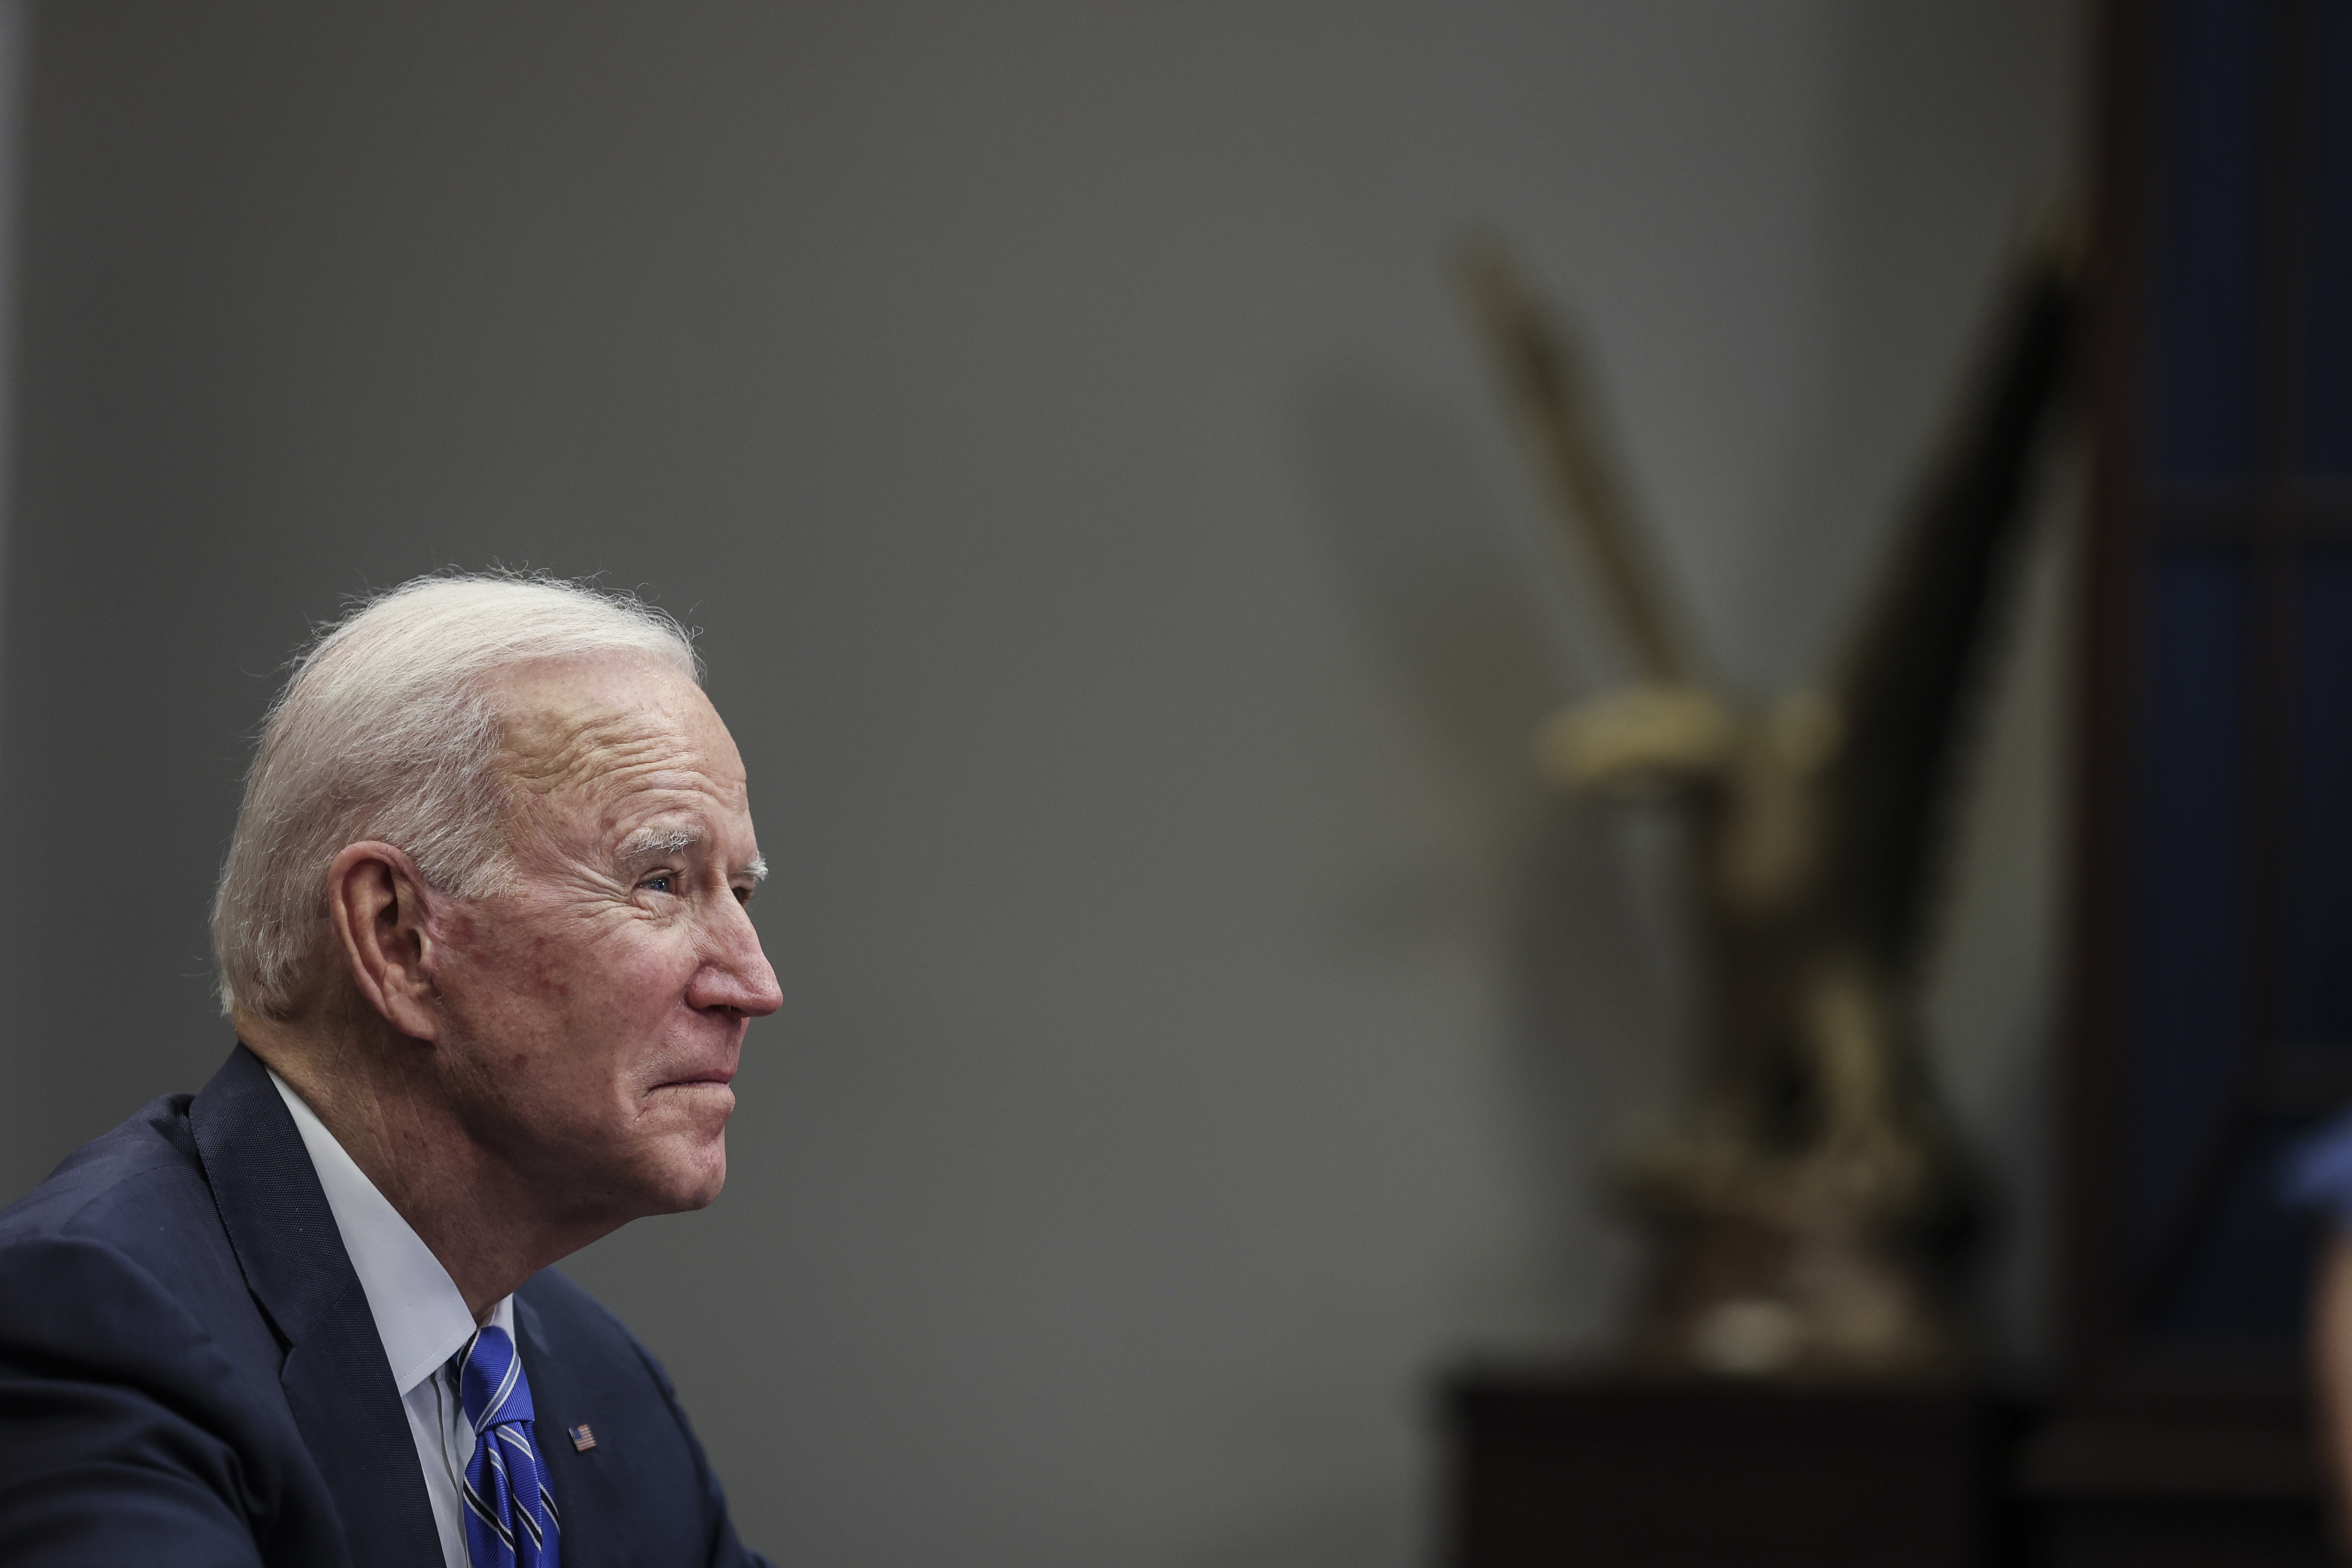 Does Biden Want Less War or Just War With More Rules? thumbnail